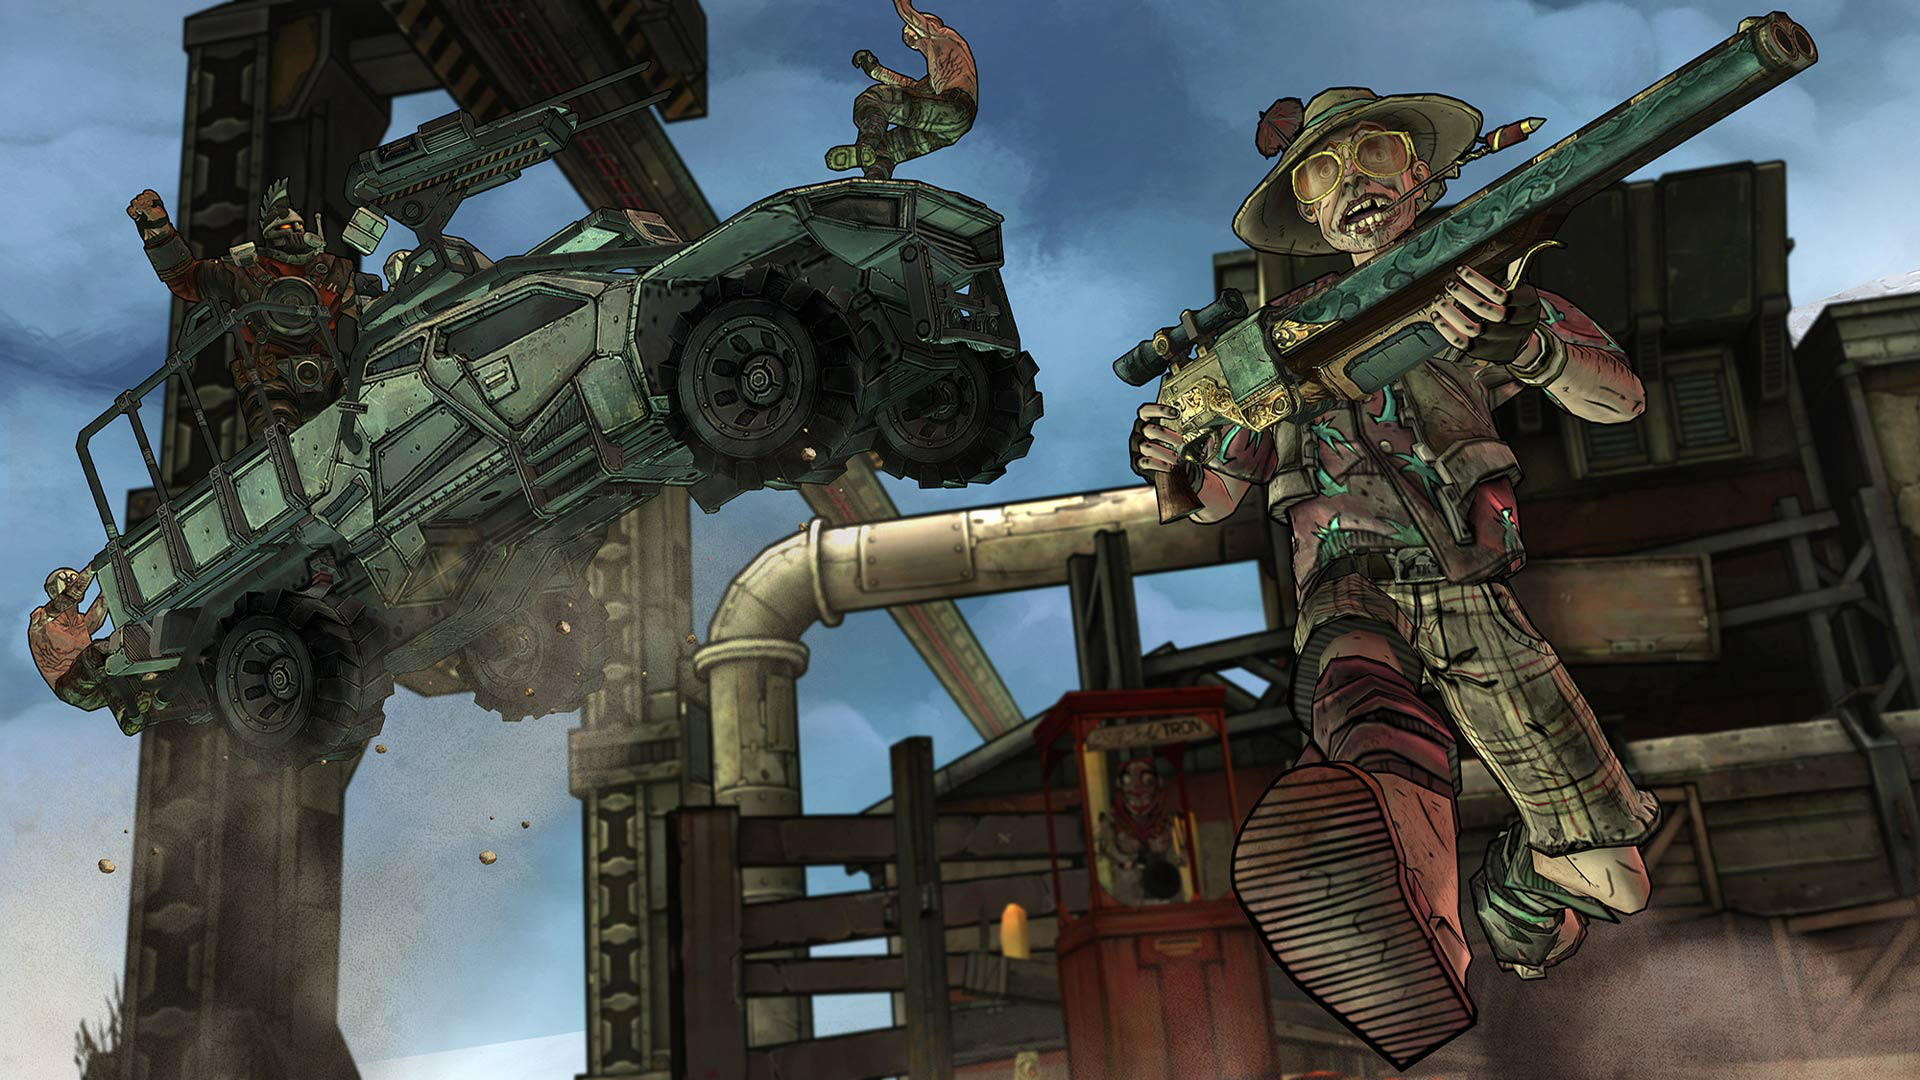 Tales from the Borderlands screenshot #4